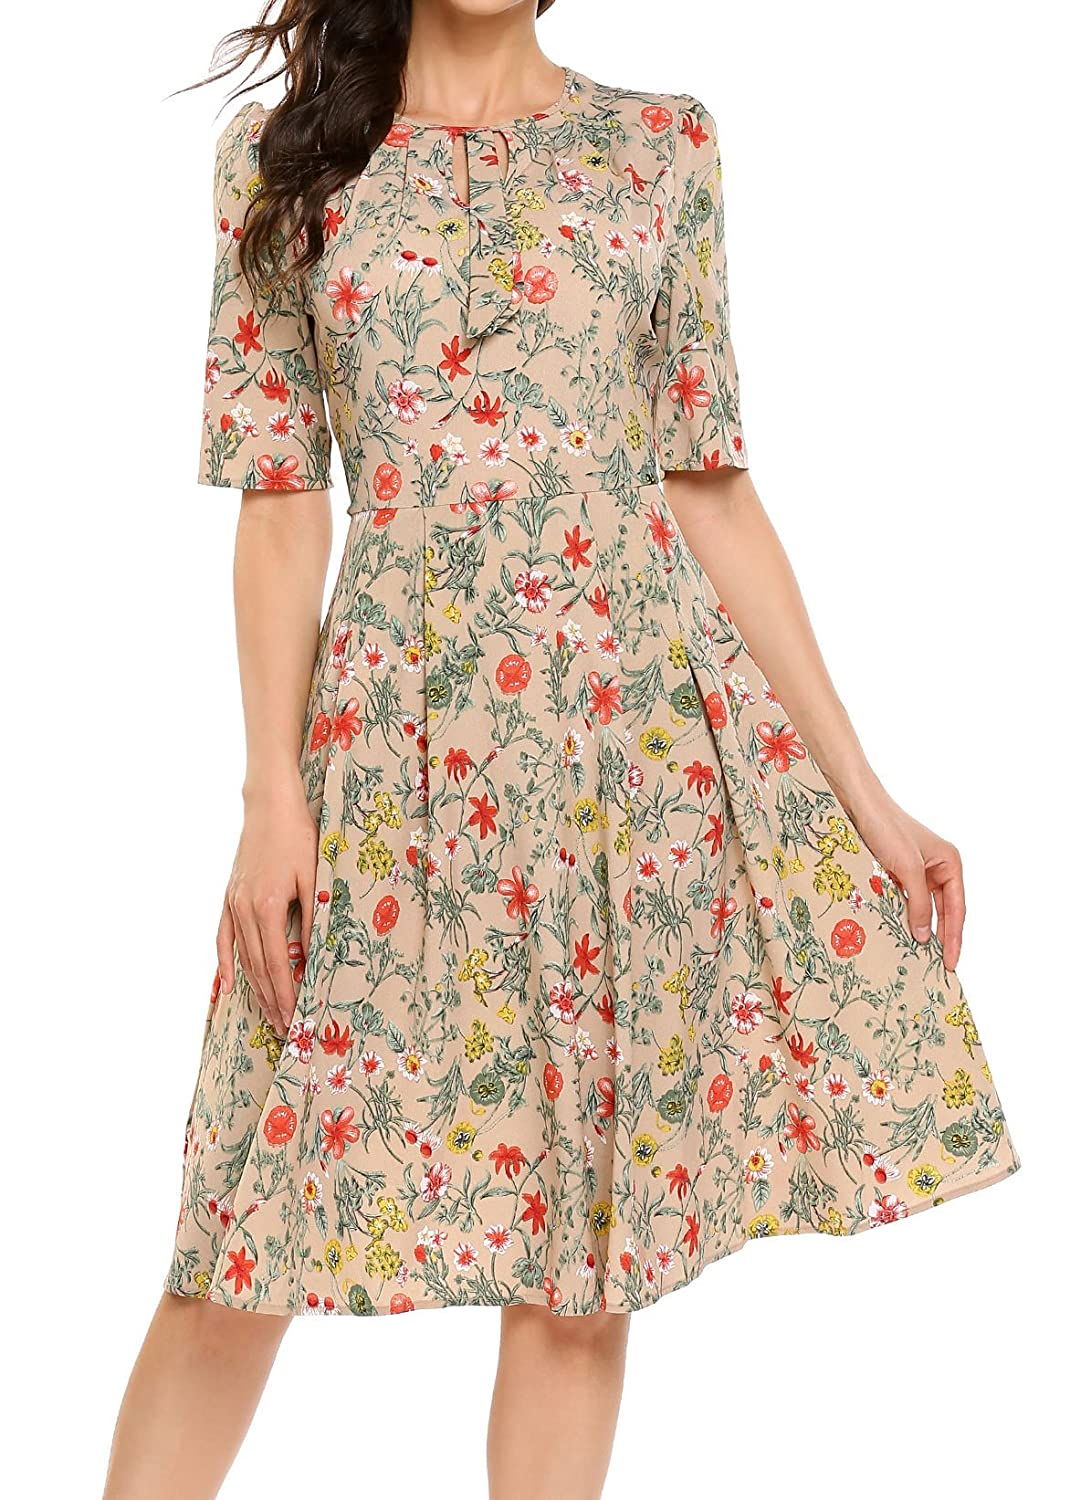 1940s Fashion Advice for Tall Women Casual Short Sleeve Floral Printed Fit and Flare Party Dress ACEVOG Womens $30.79 AT vintagedancer.com